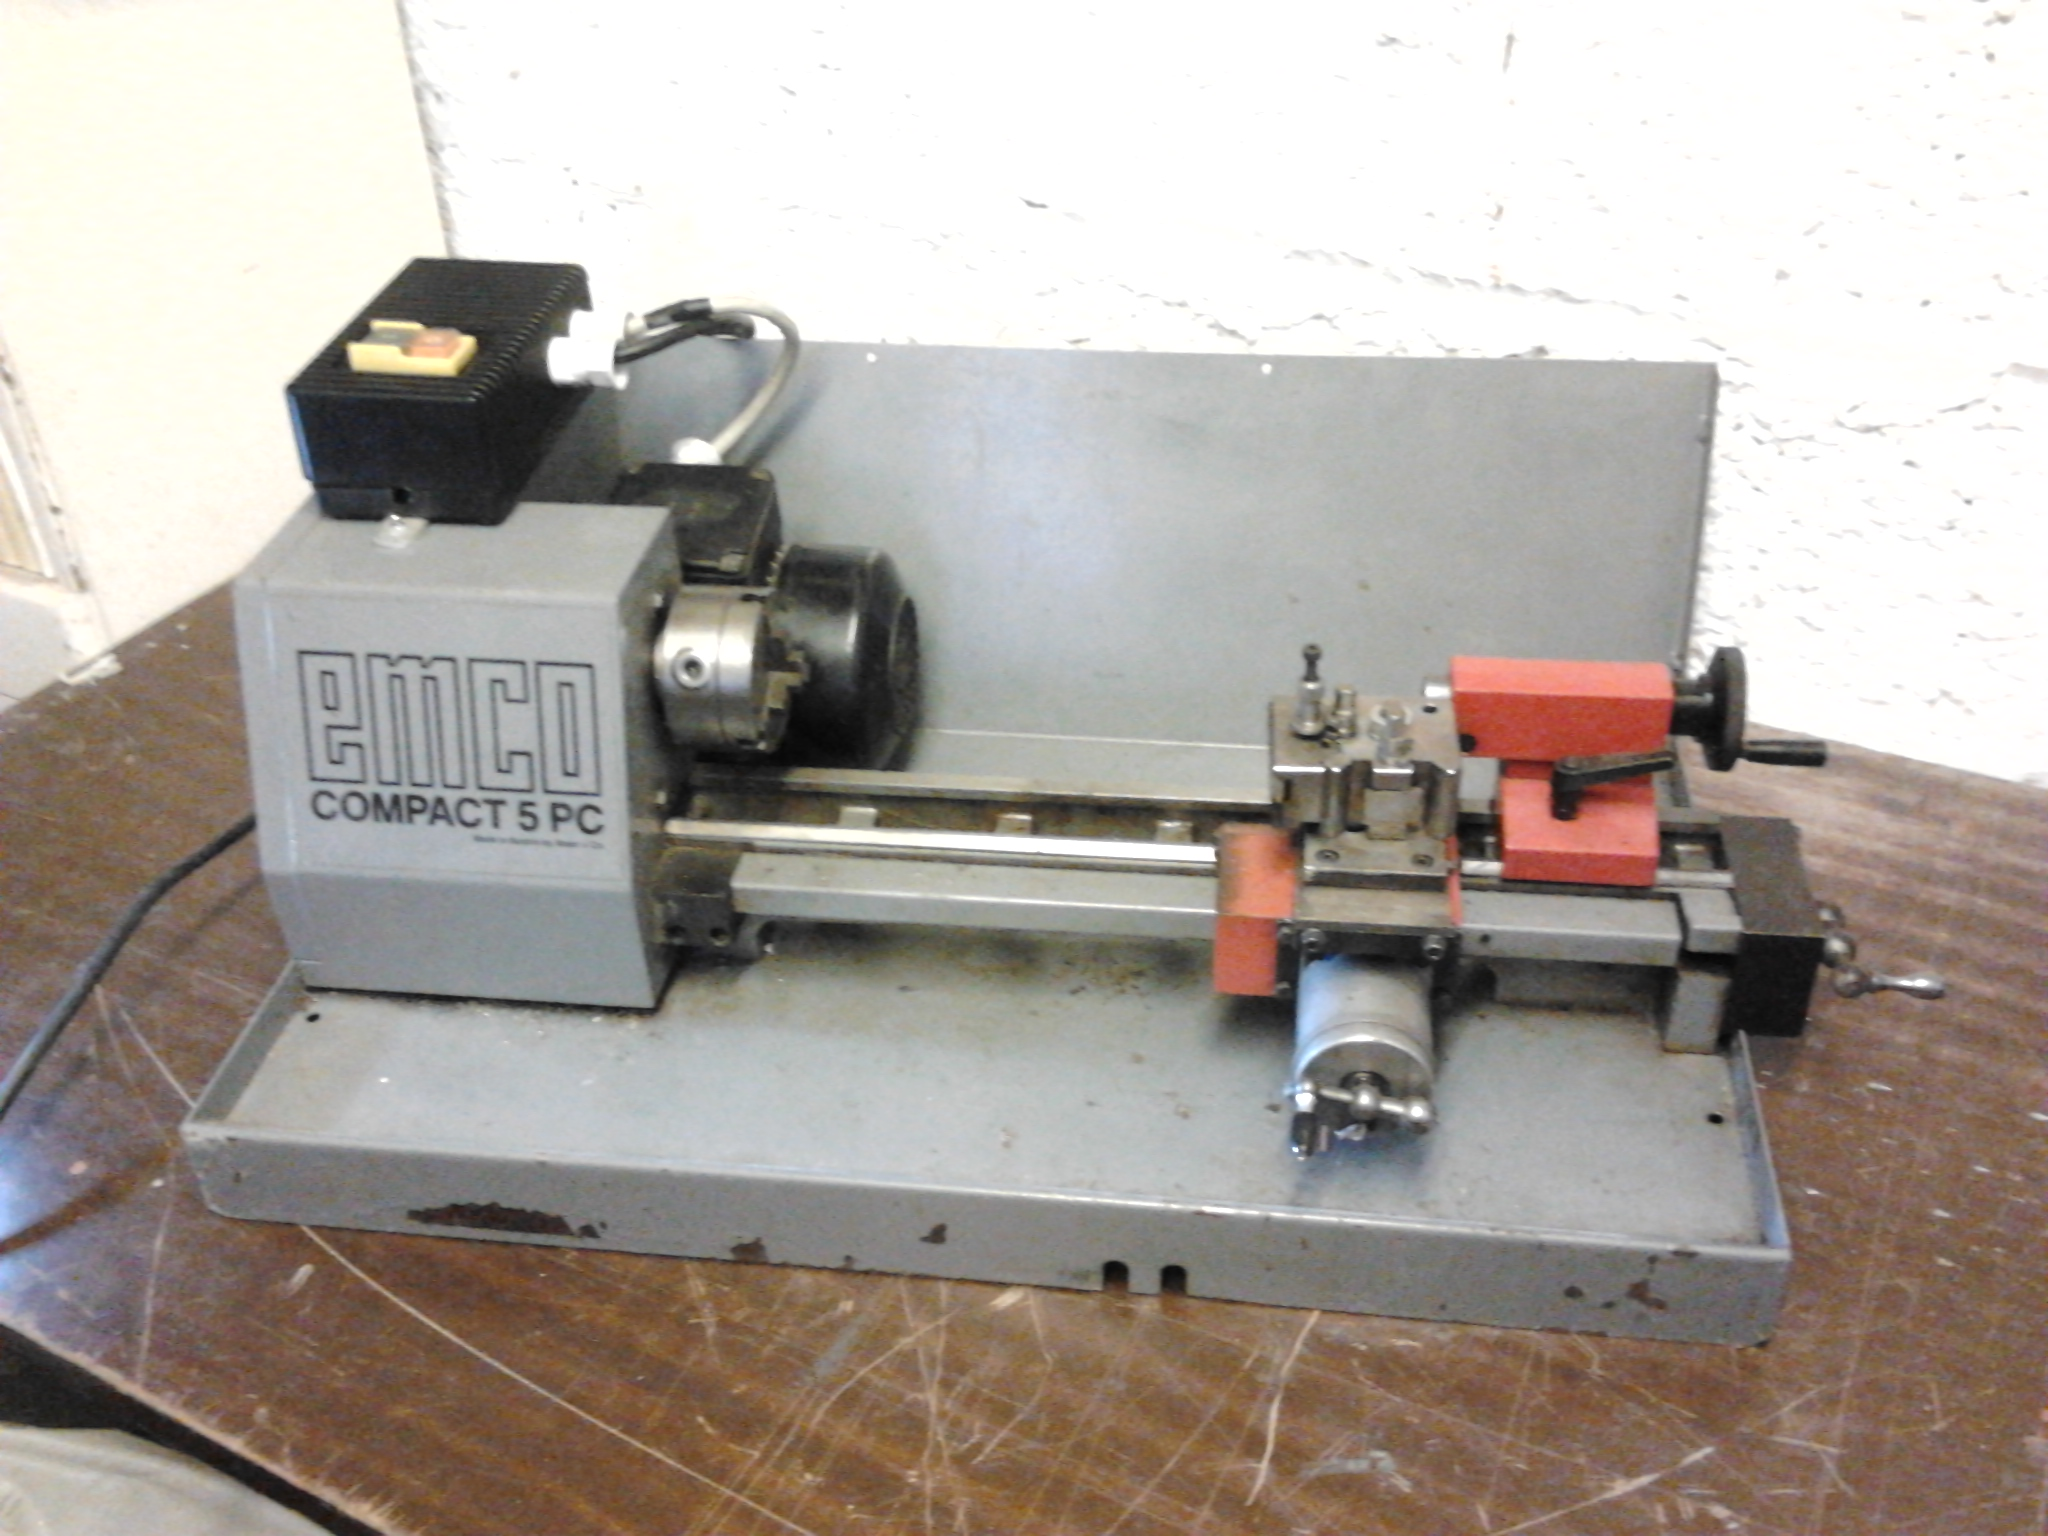 downsizing a broken emco compact 5 pc lathe to manual operation emco compact 5 cnc electrical wiring diagram [ 2048 x 1536 Pixel ]